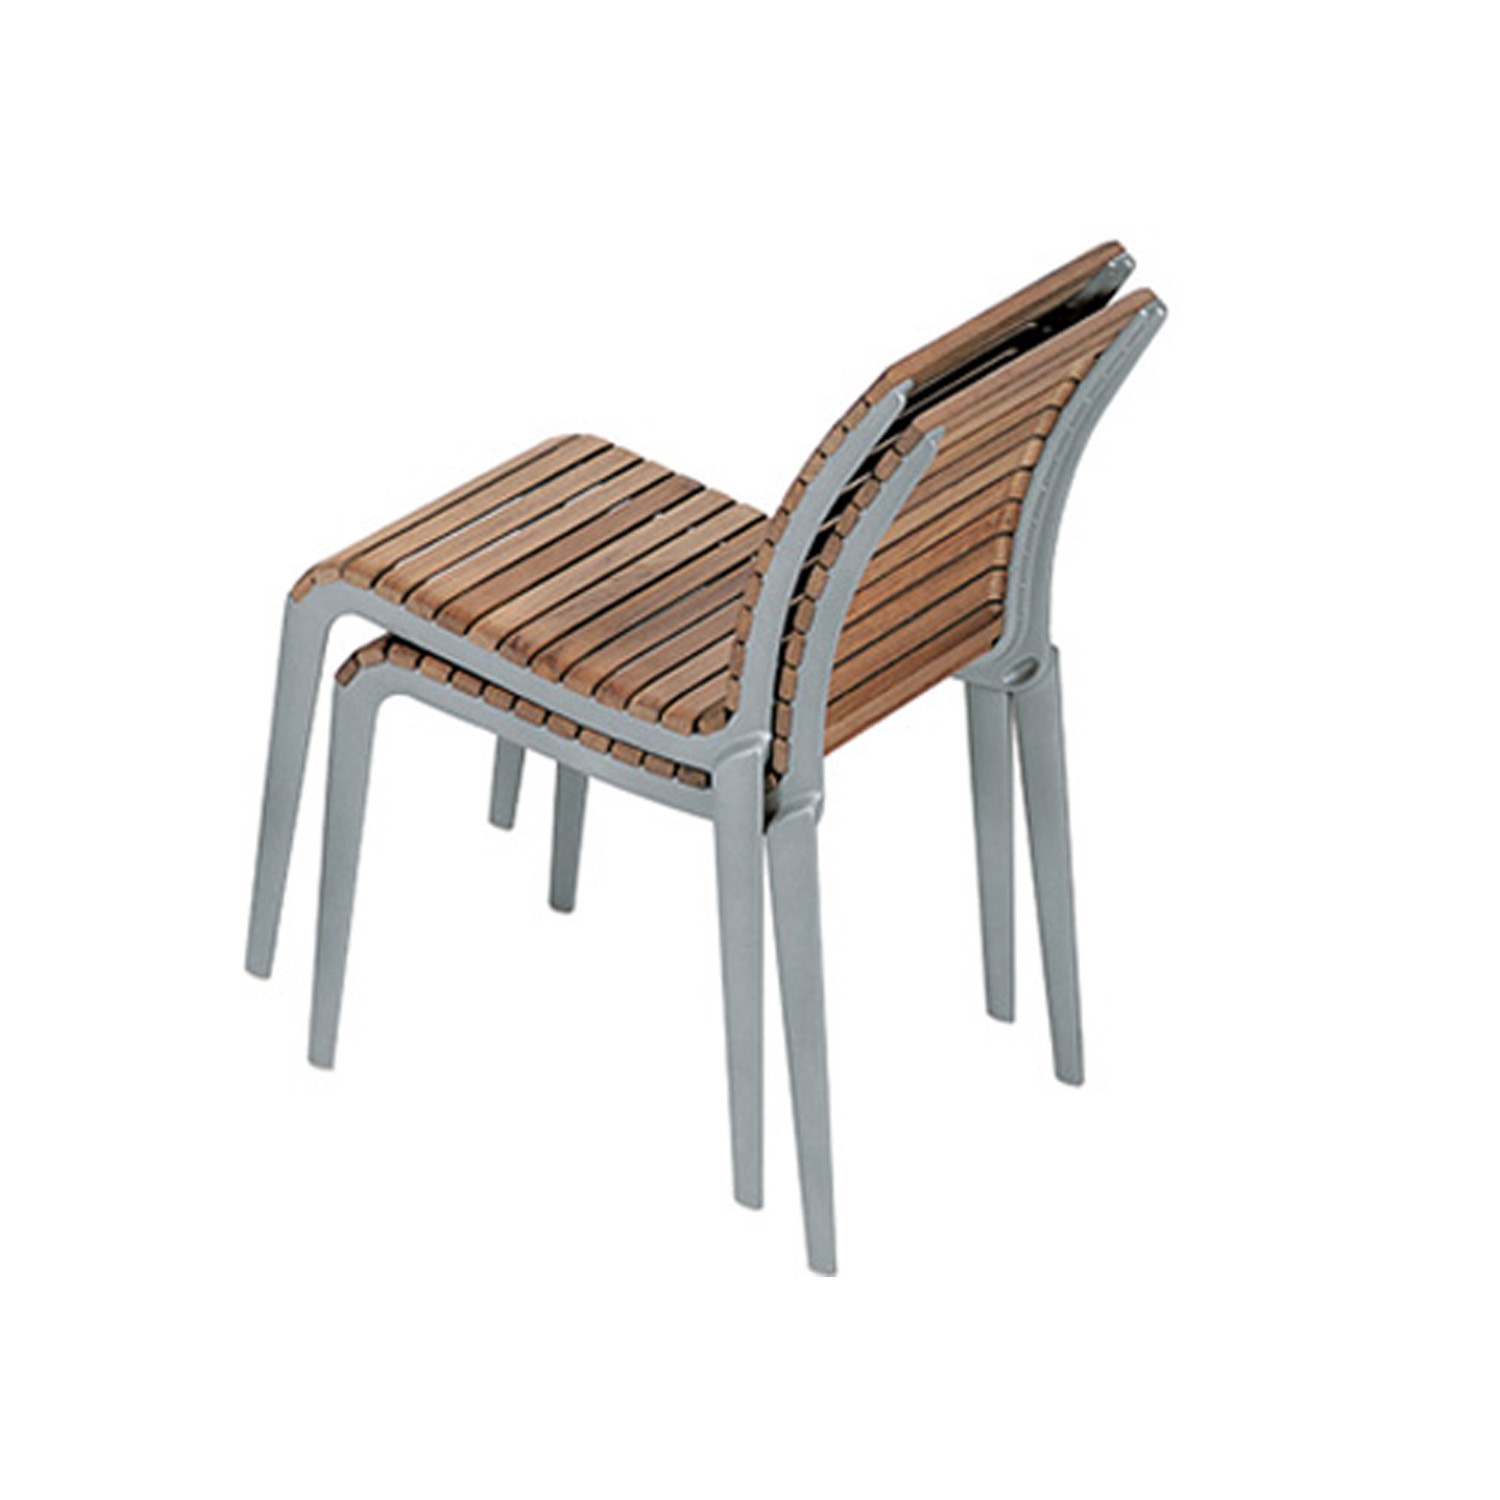 Teak Outdoor Stacking Chairs